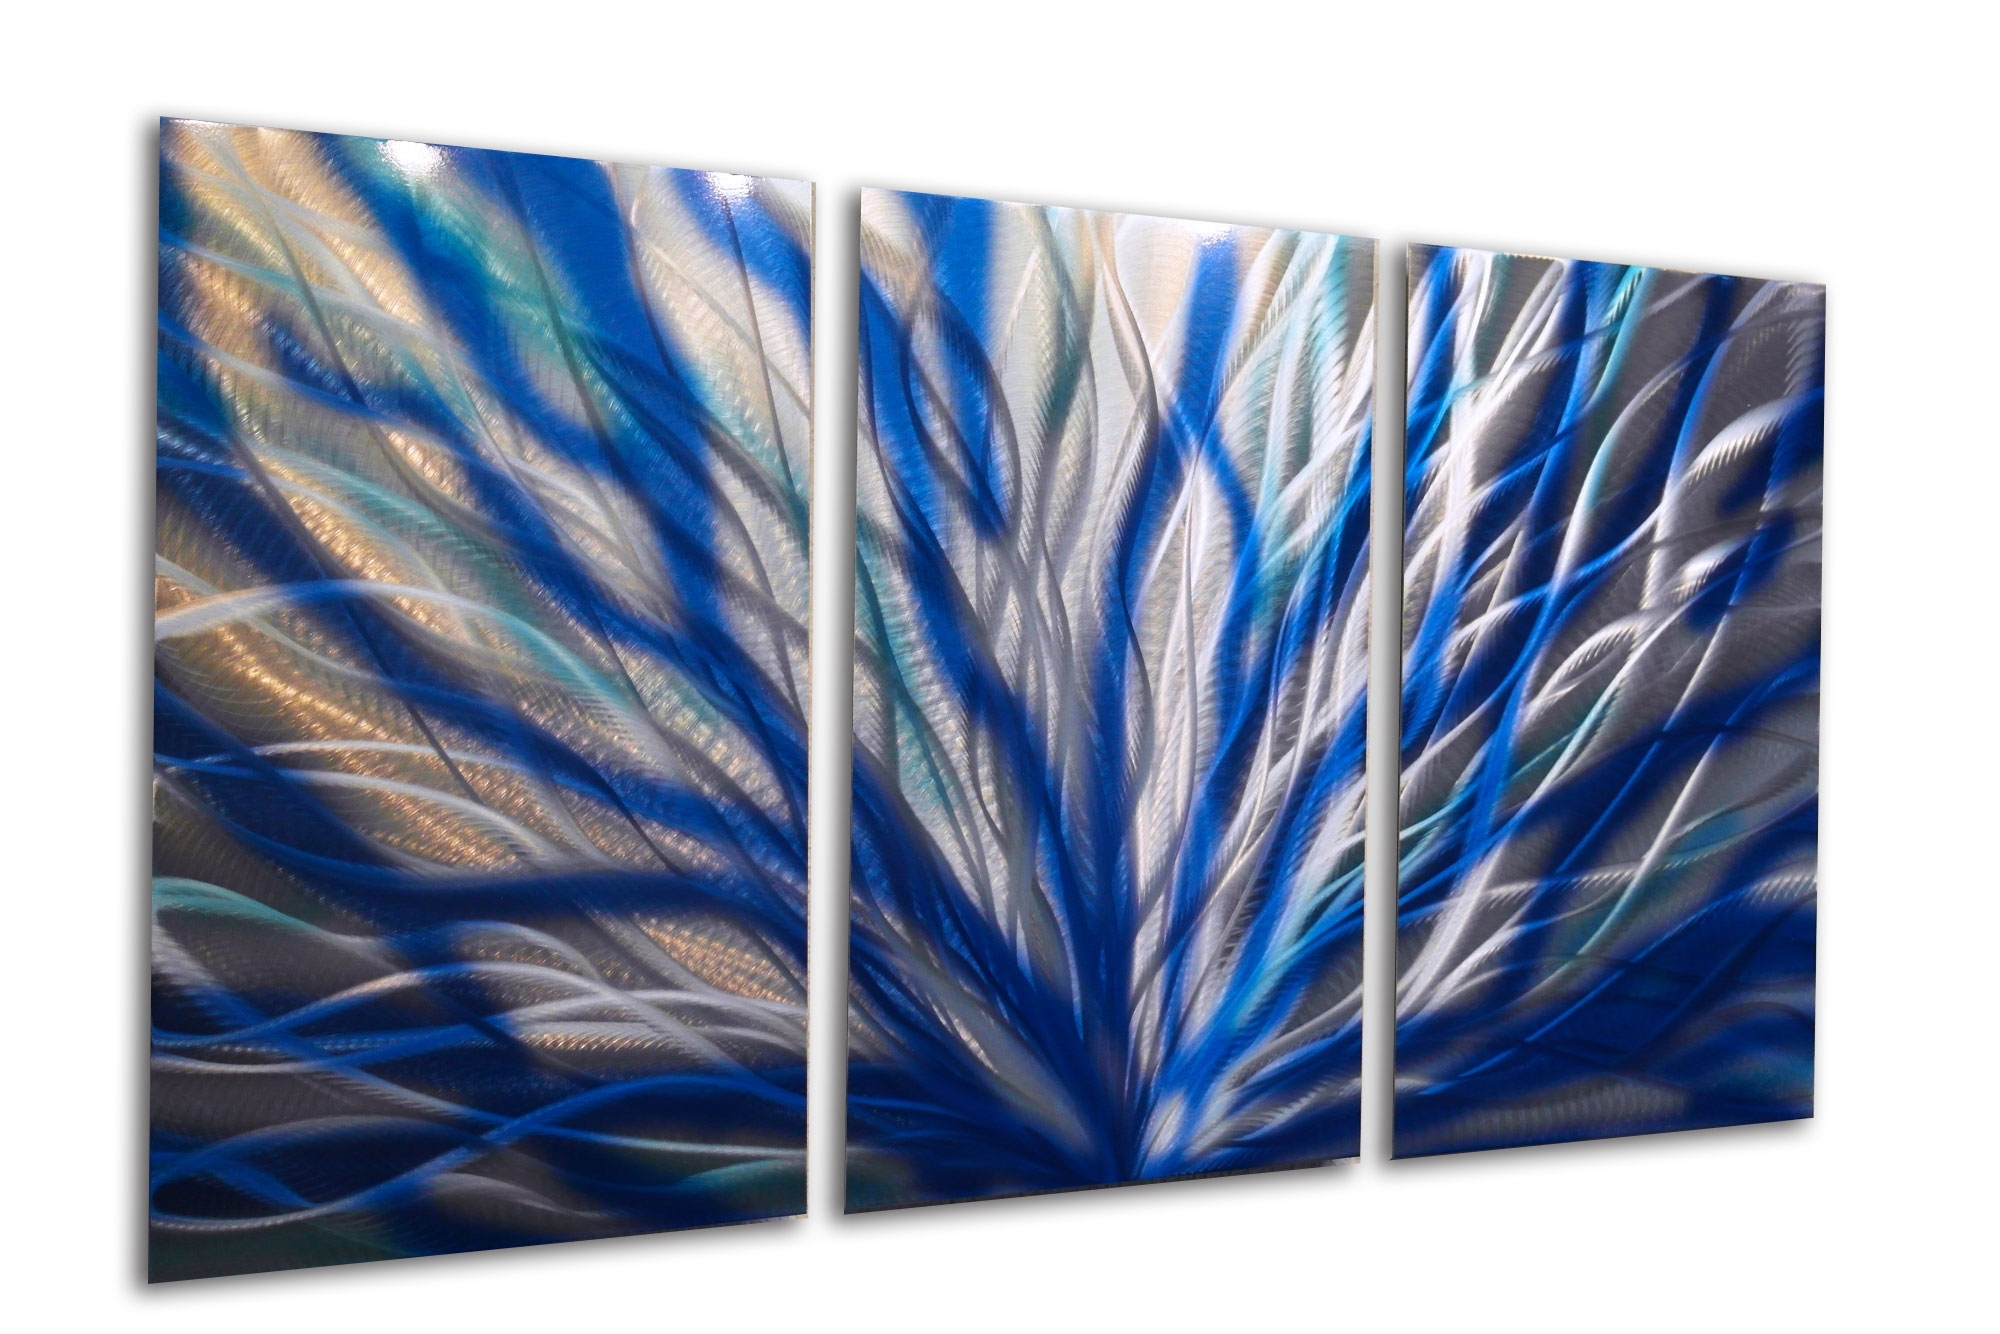 Radiance Blue 47 V2 – Metal Wall Art Abstract Sculpture Modern Within 2018 Aqua Abstract Wall Art (View 2 of 20)